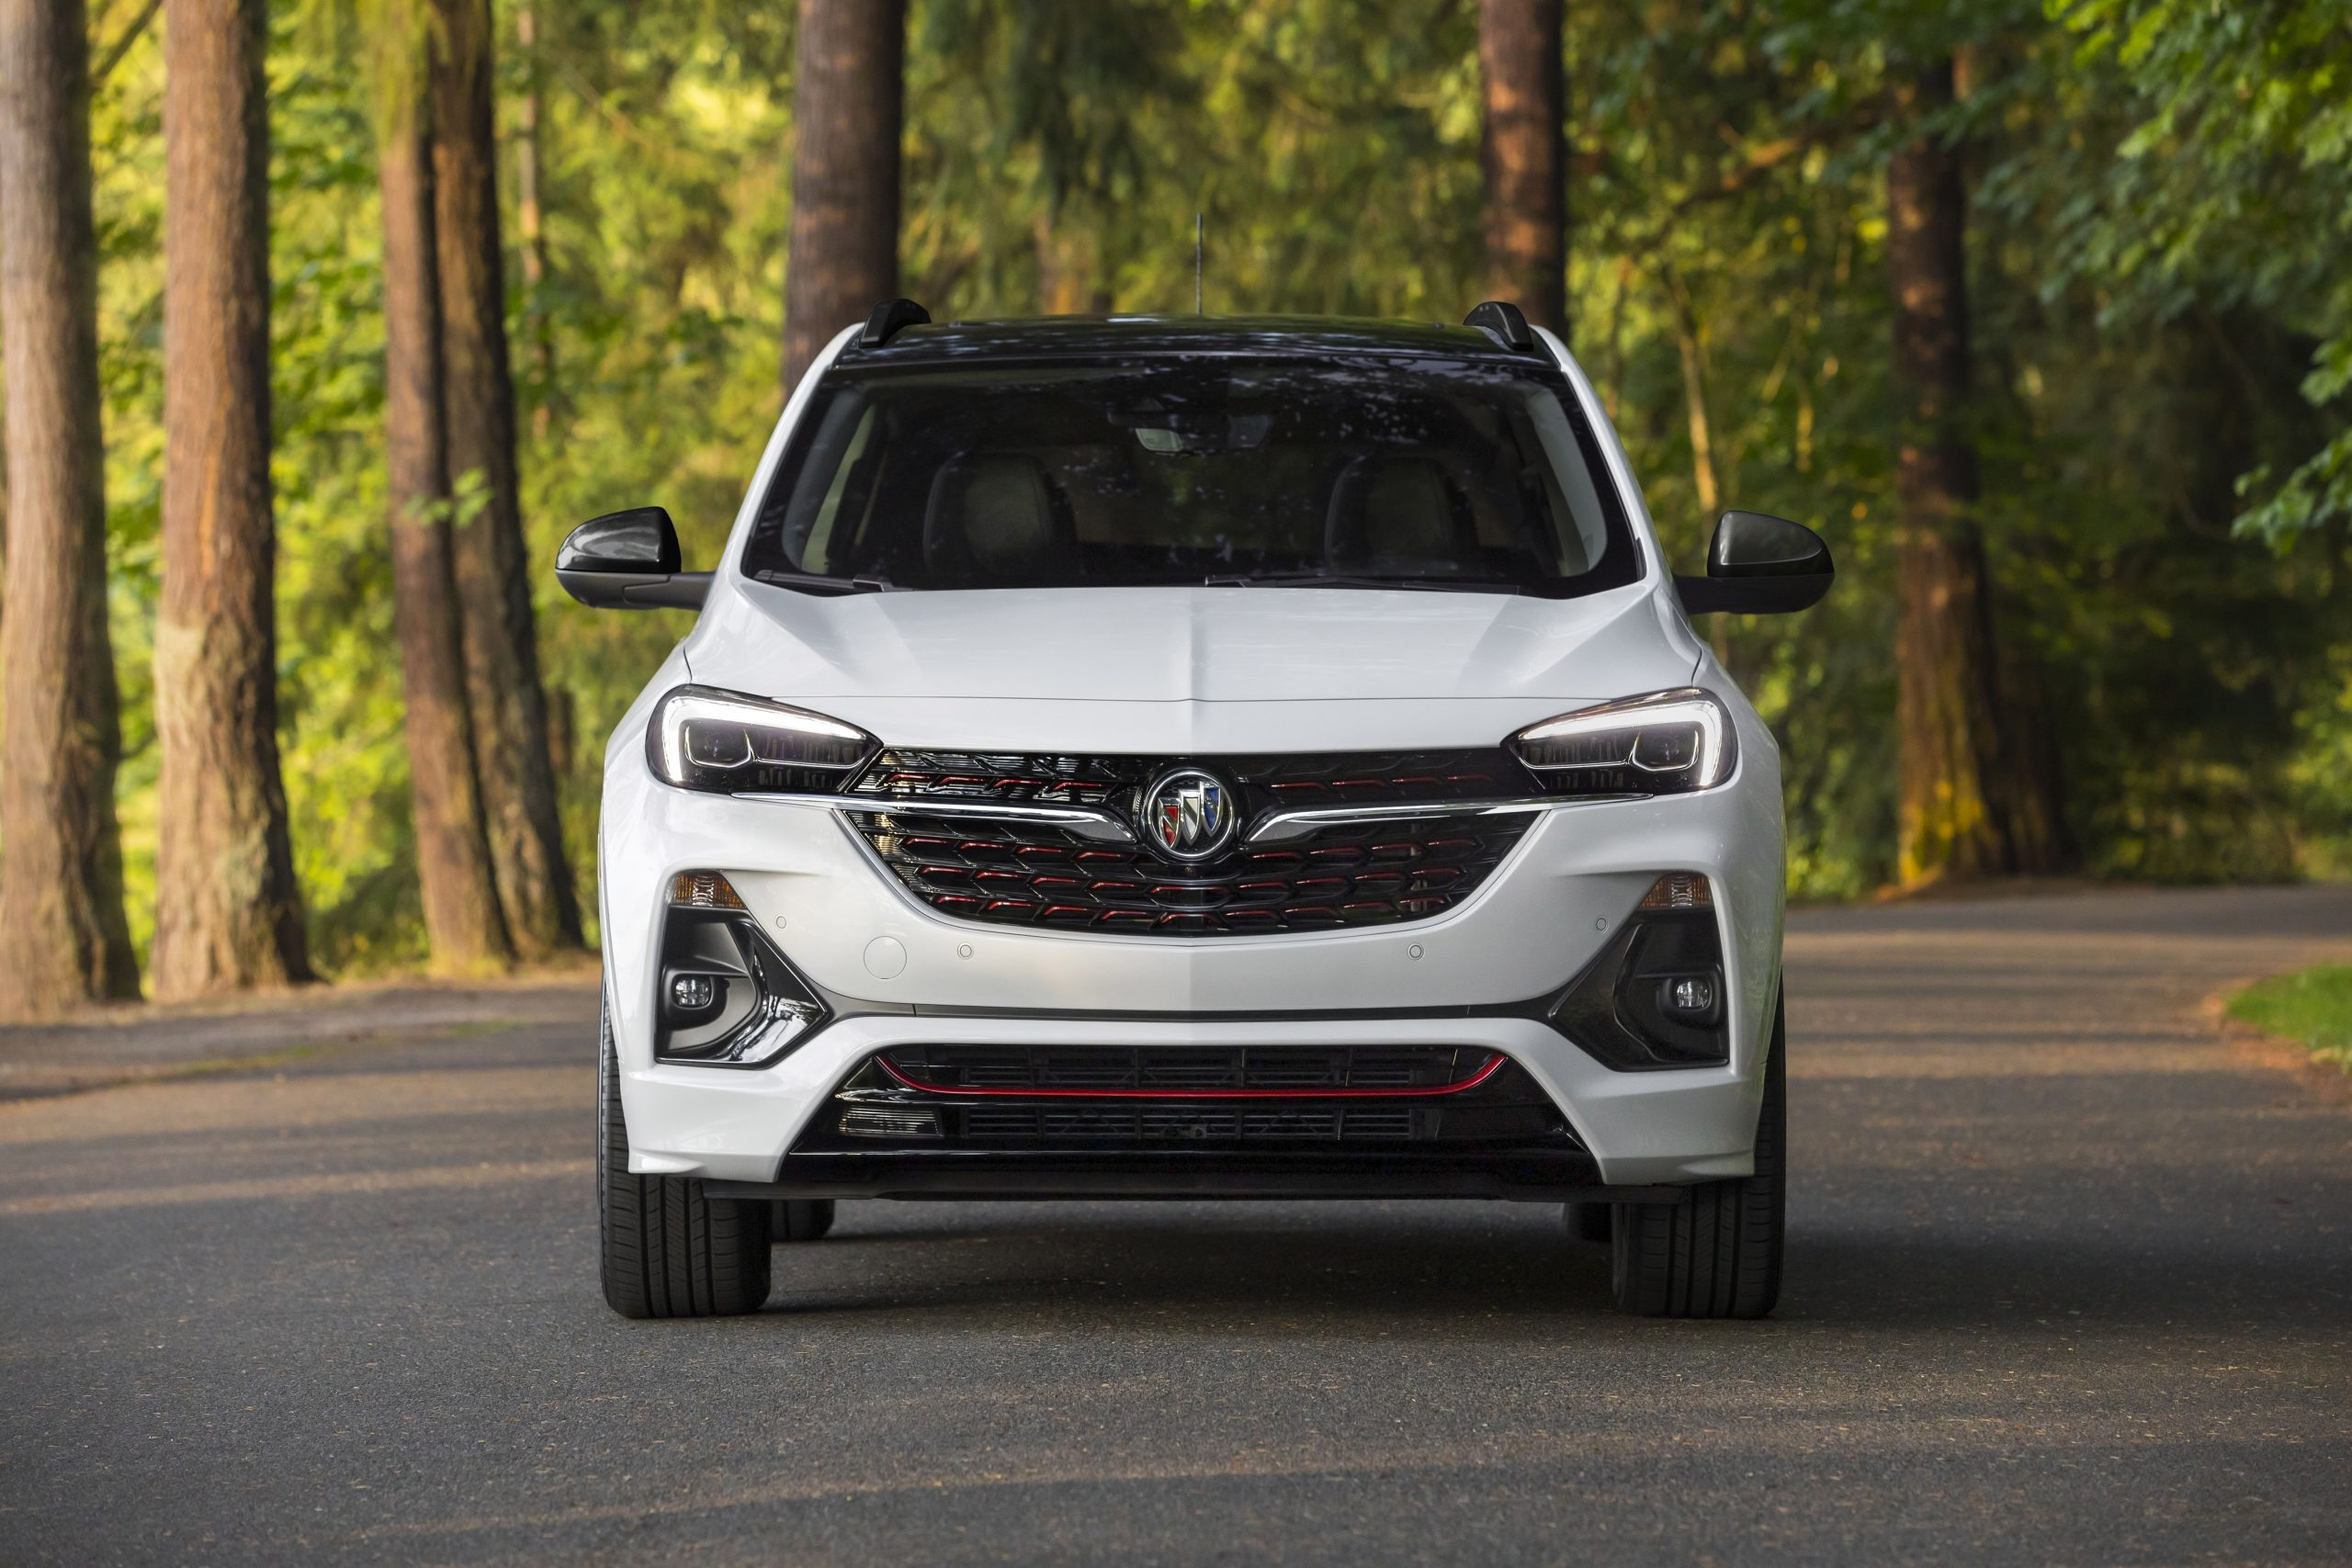 Buick Encore Gx Debuts In La | Gm Authority Where Is The 2022 Buick Encore Gx Built